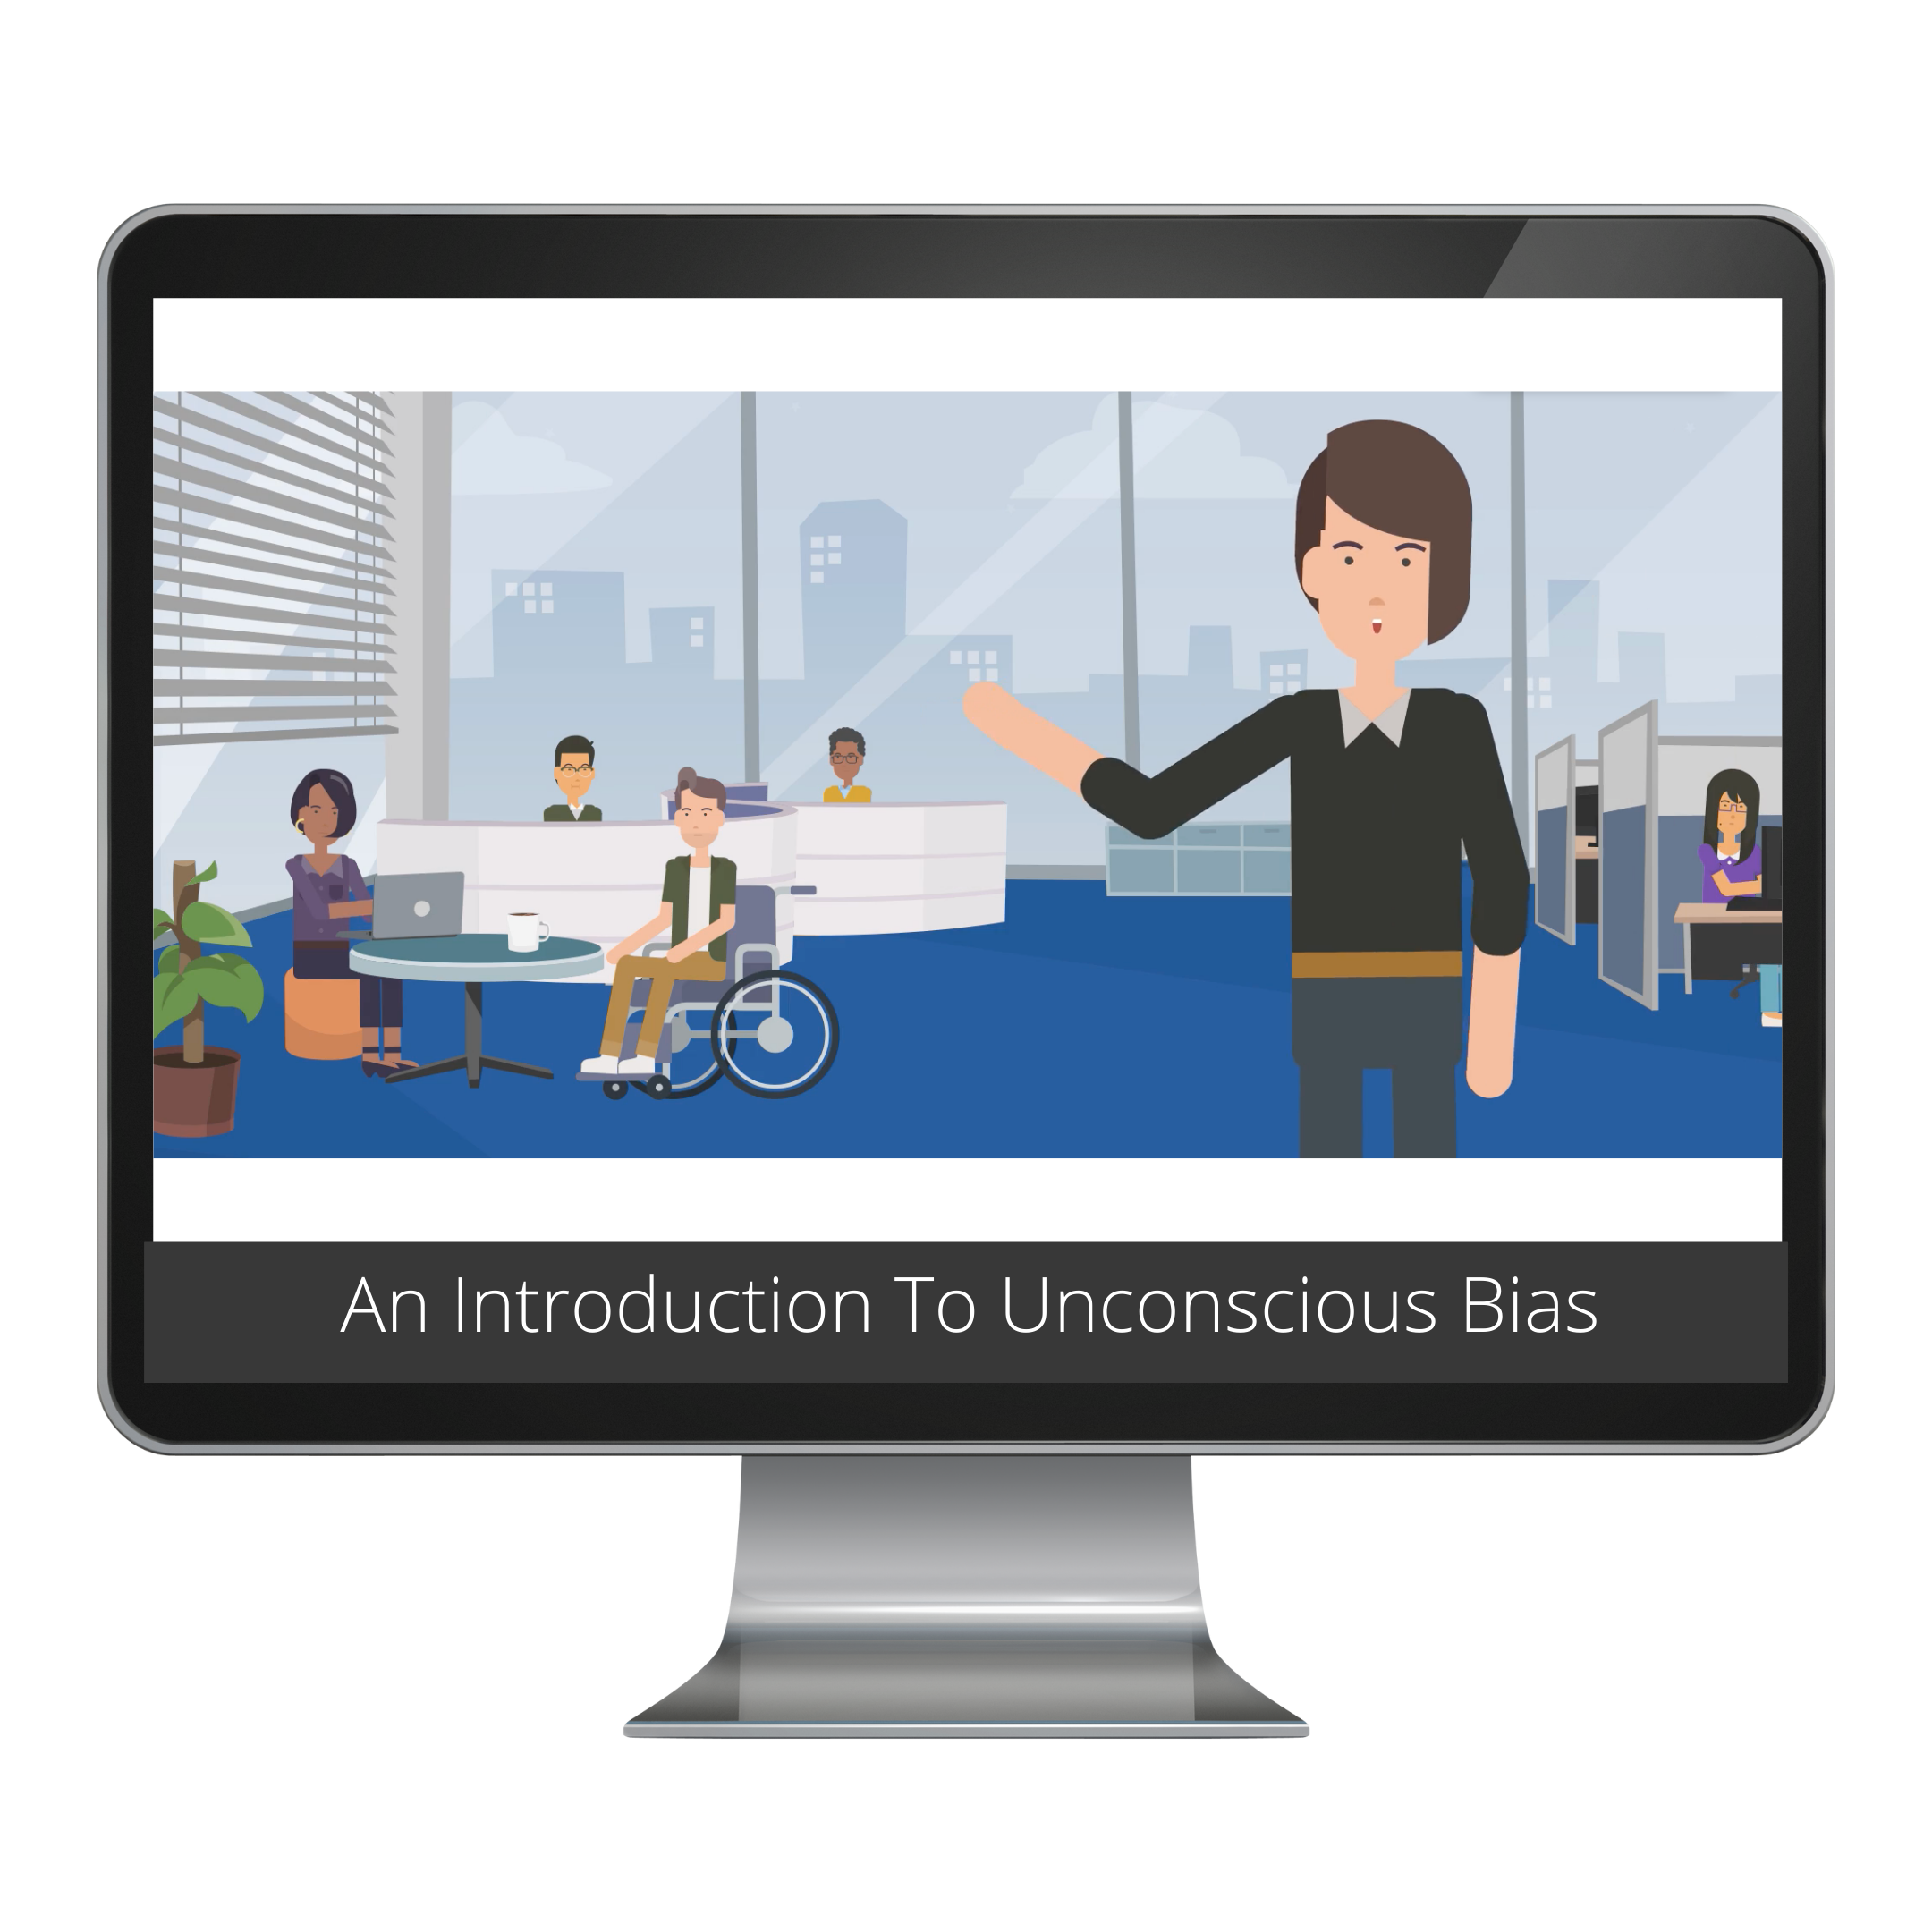 MIX Diversity Developers - An Introduction to Unconscious Bias